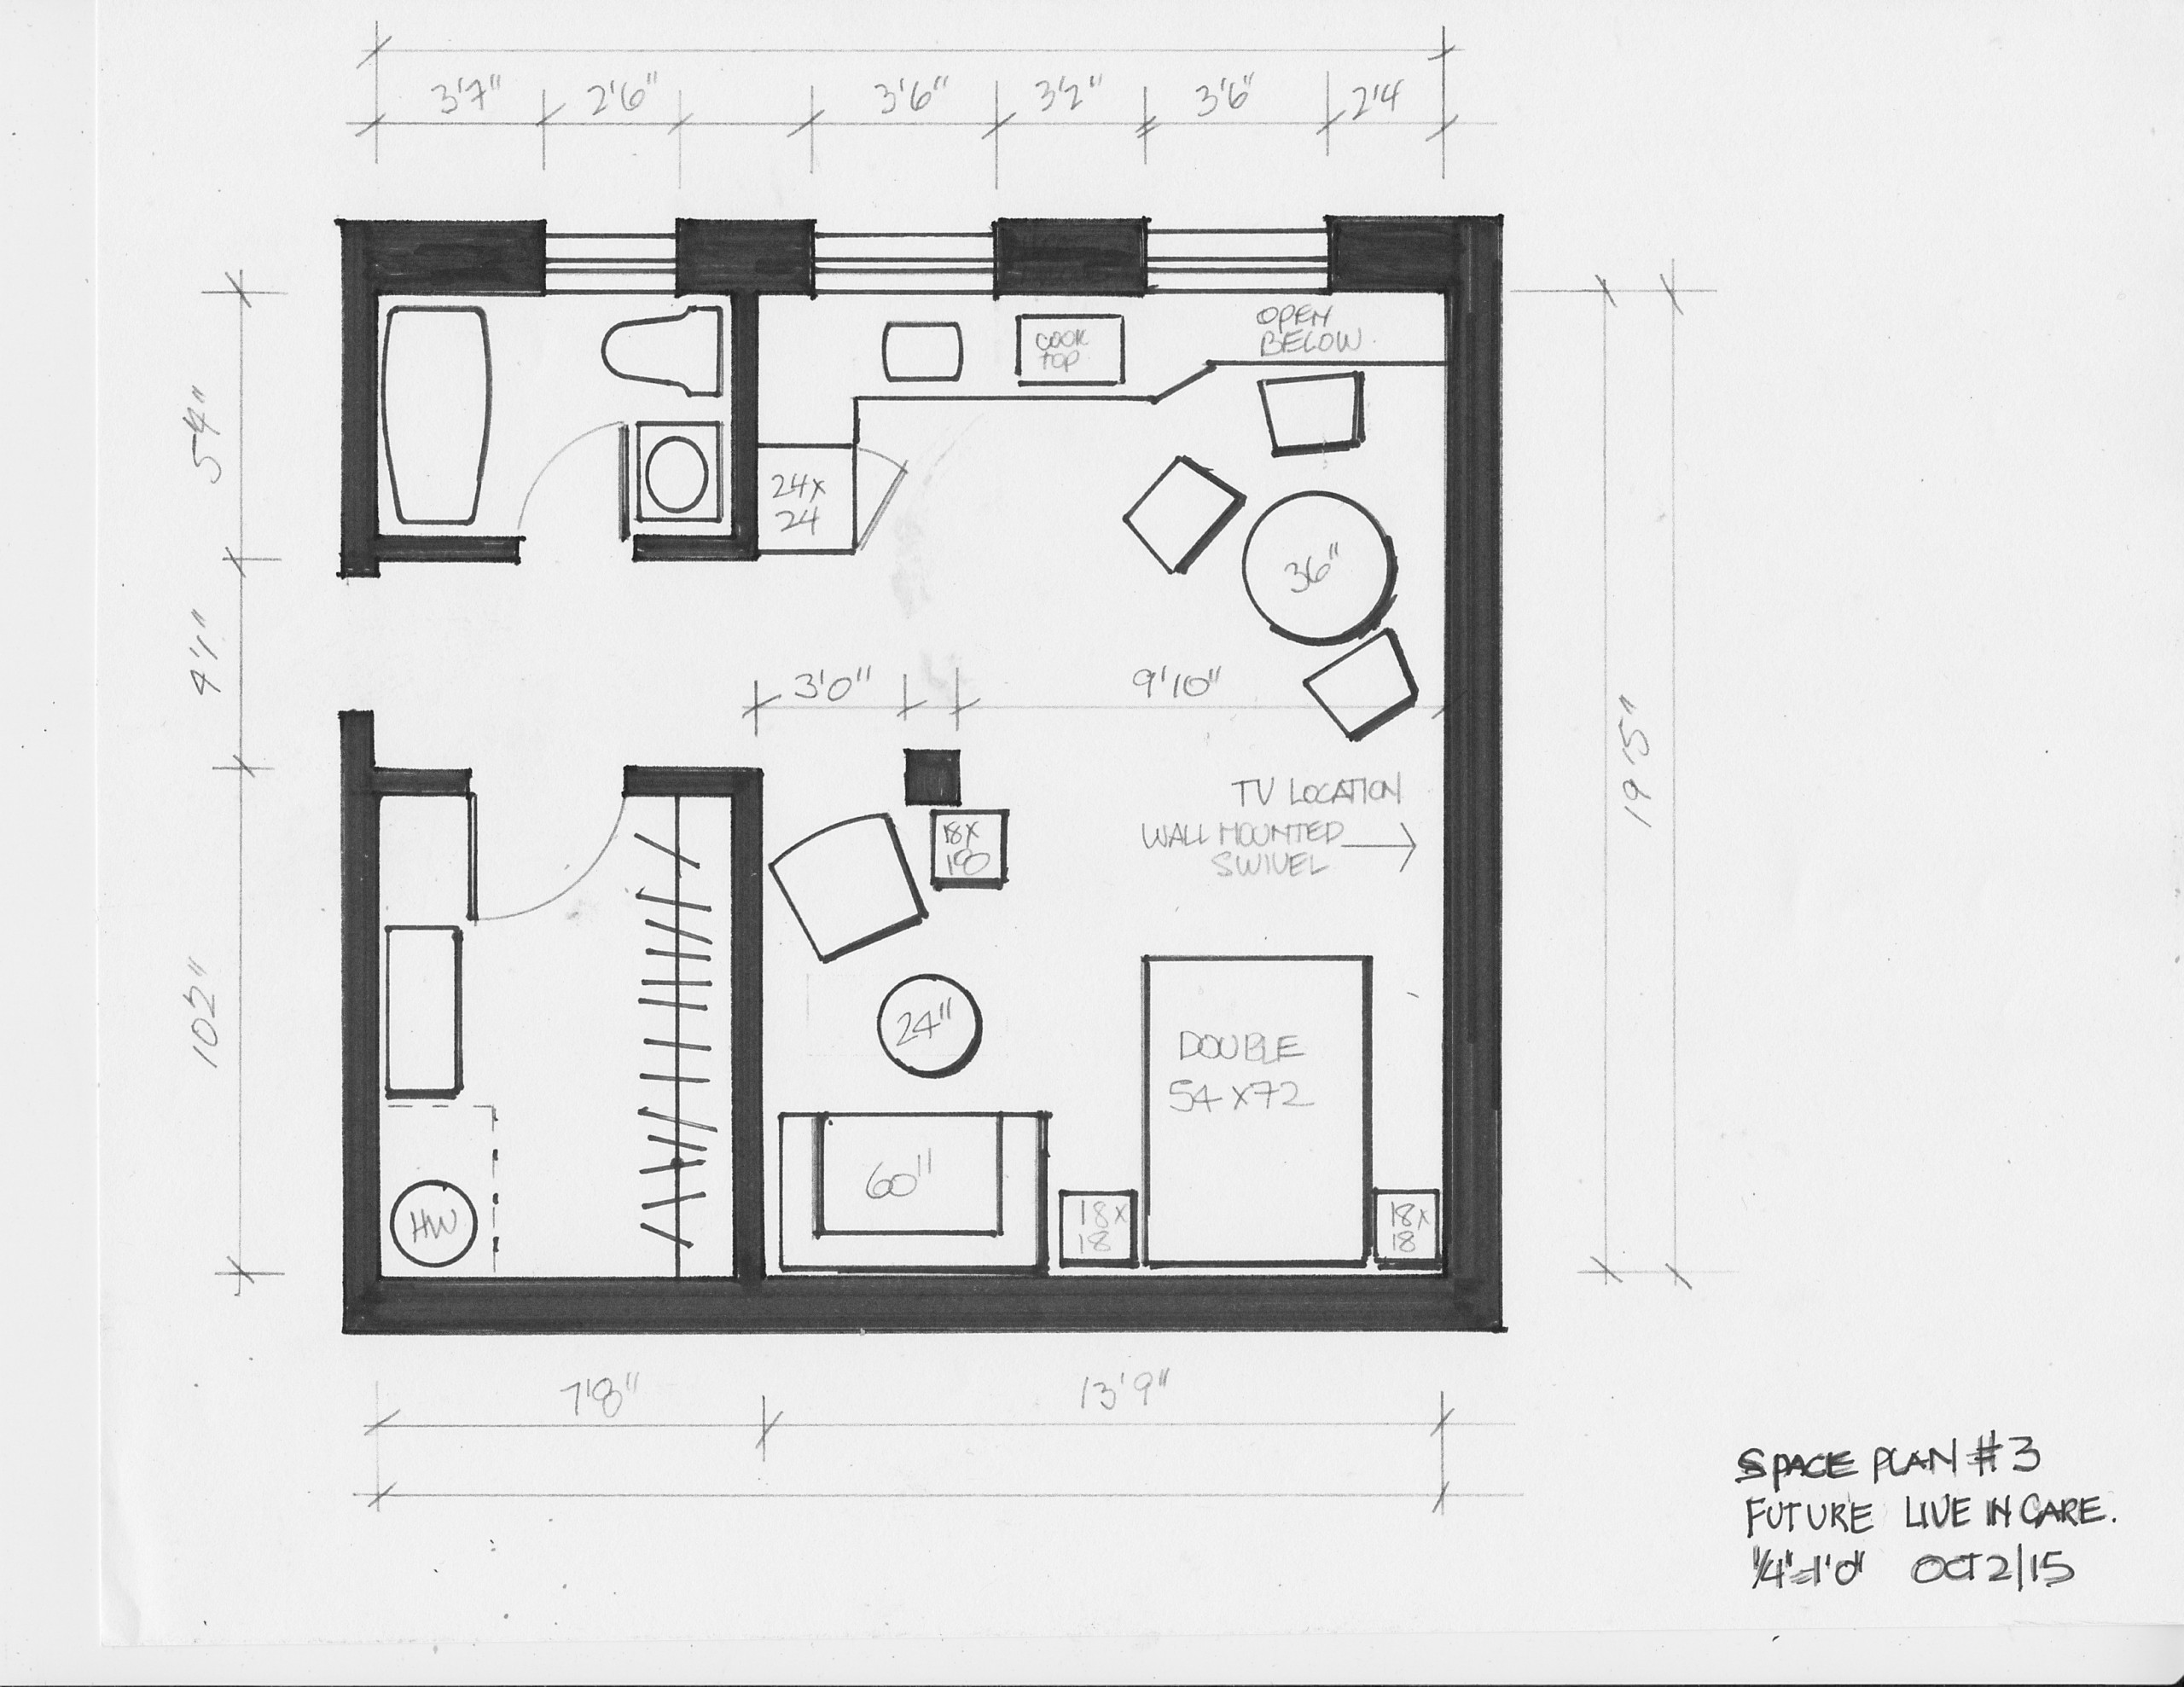 living in place space plans- live-in care suite